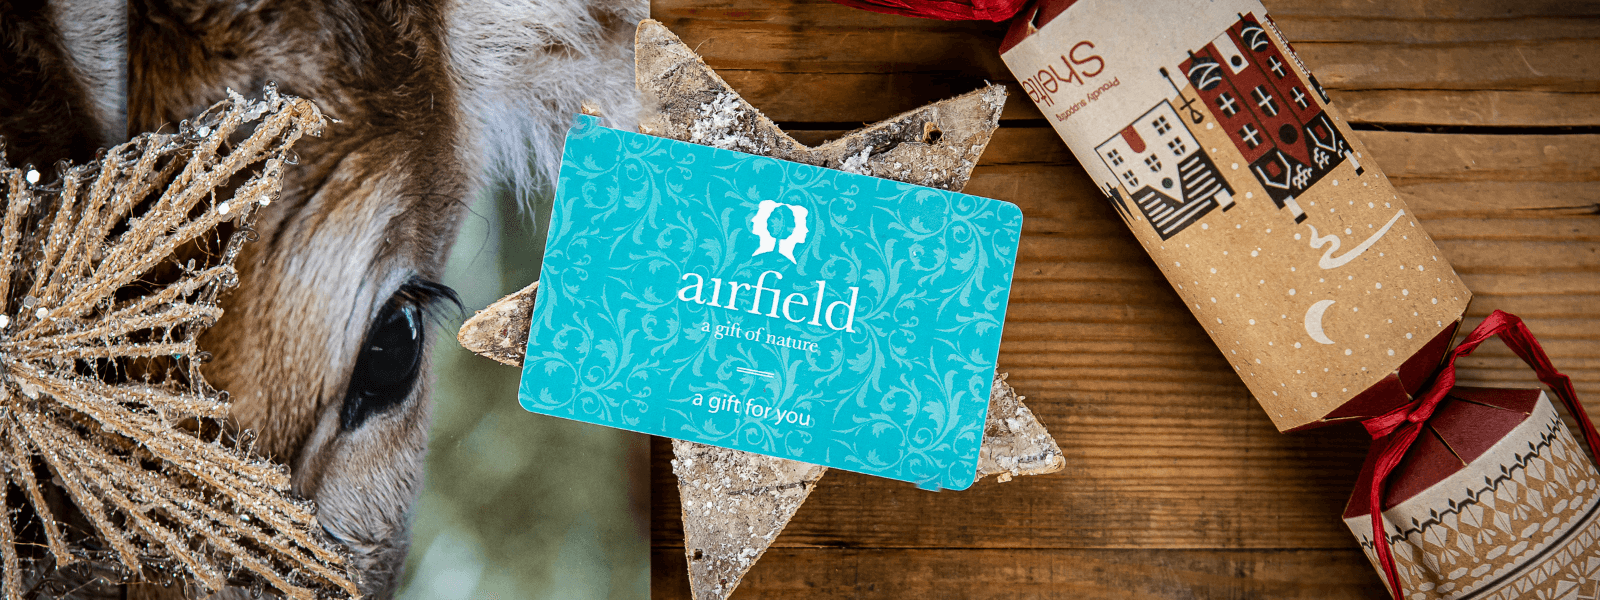 https://www.airfield.ie/wp-content/uploads/2020/11/Gift-Voucher-Home-Page-Image-1.png